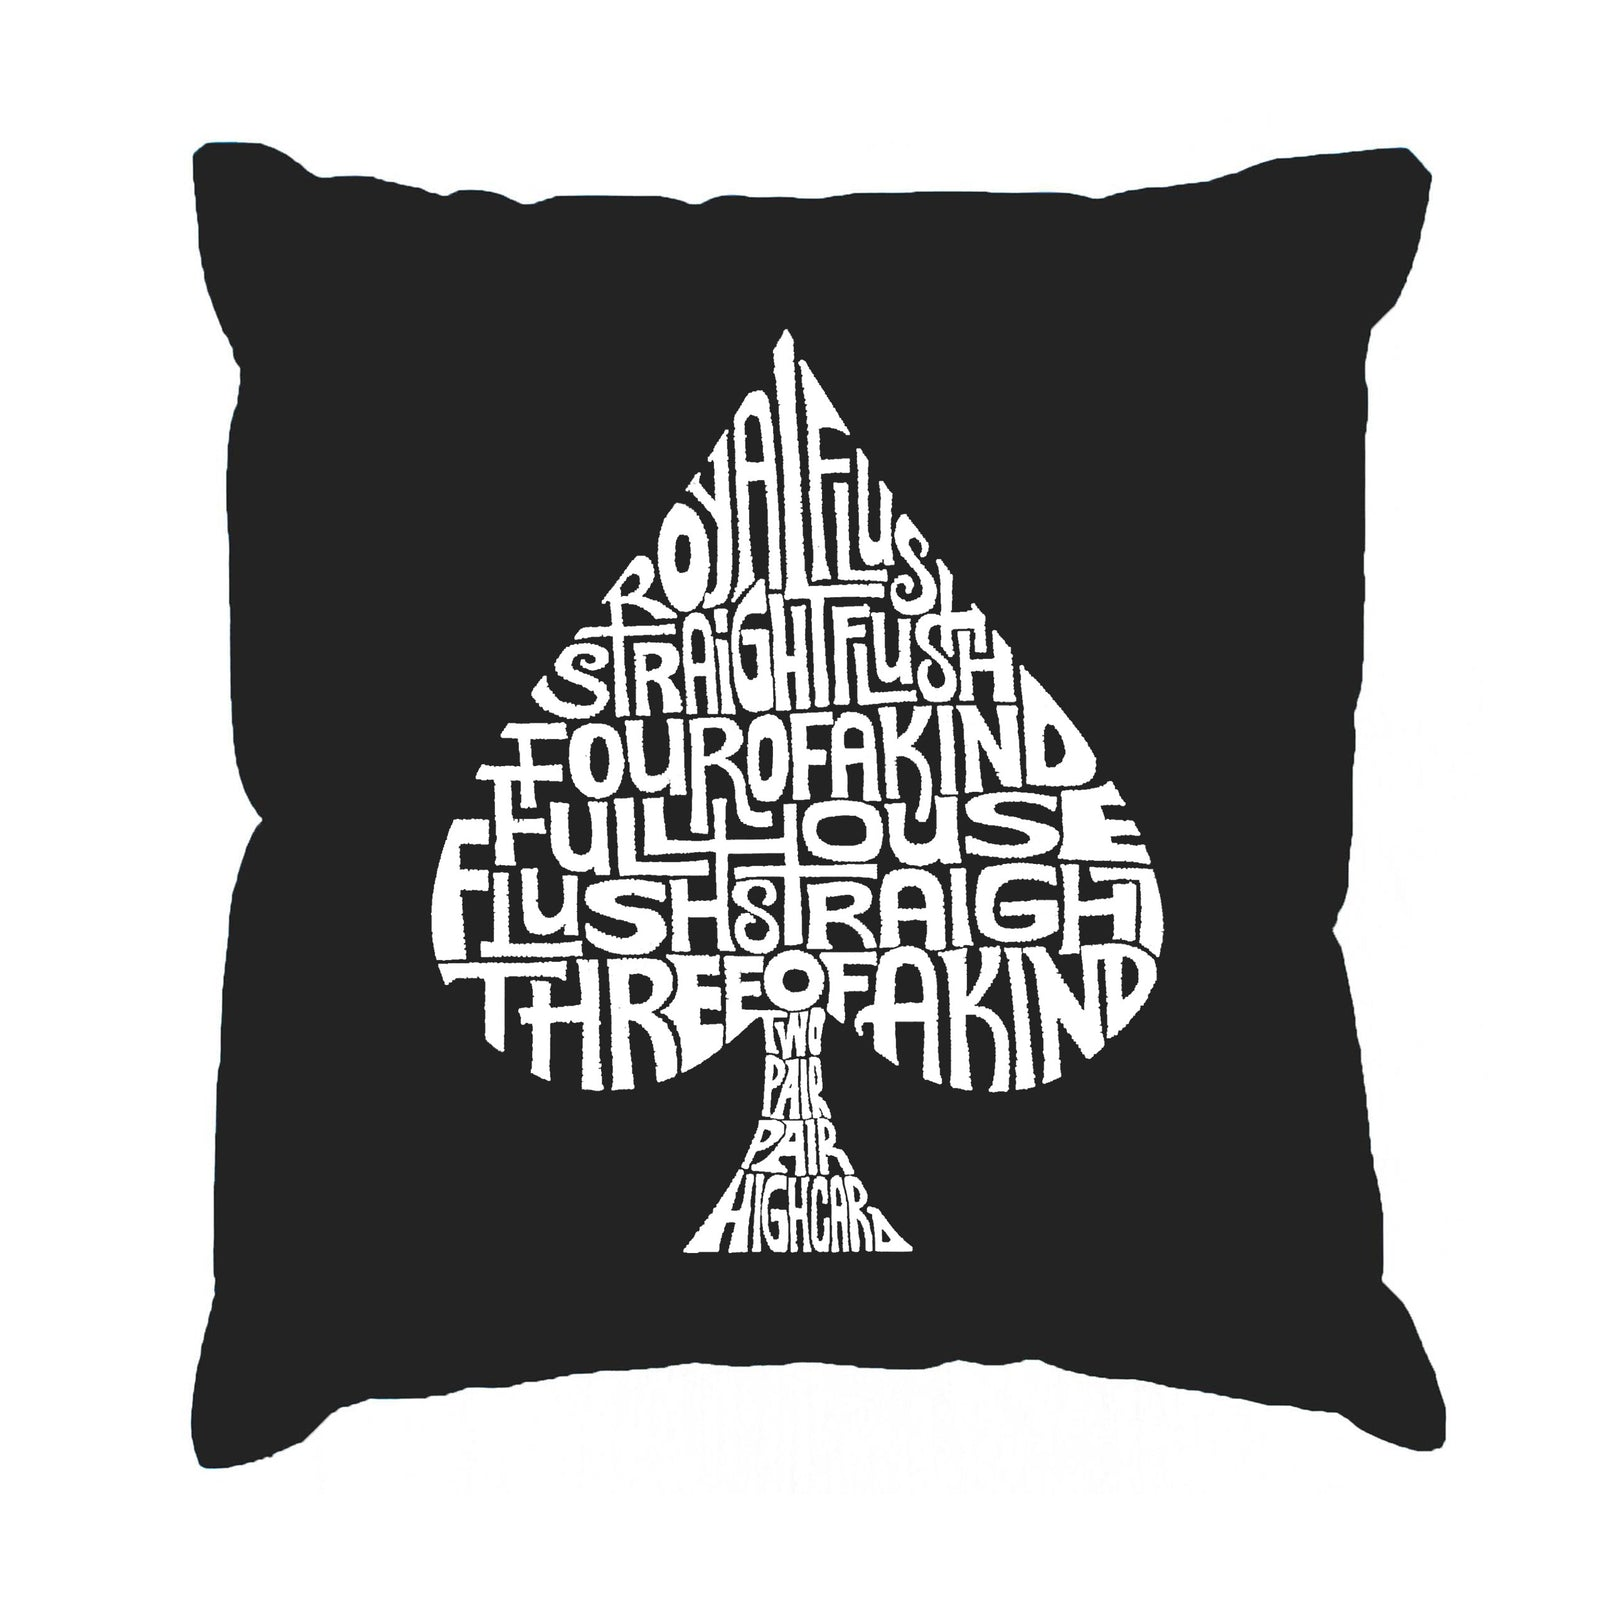 Throw Pillow Cover - ORDER OF WINNING POKER HANDS